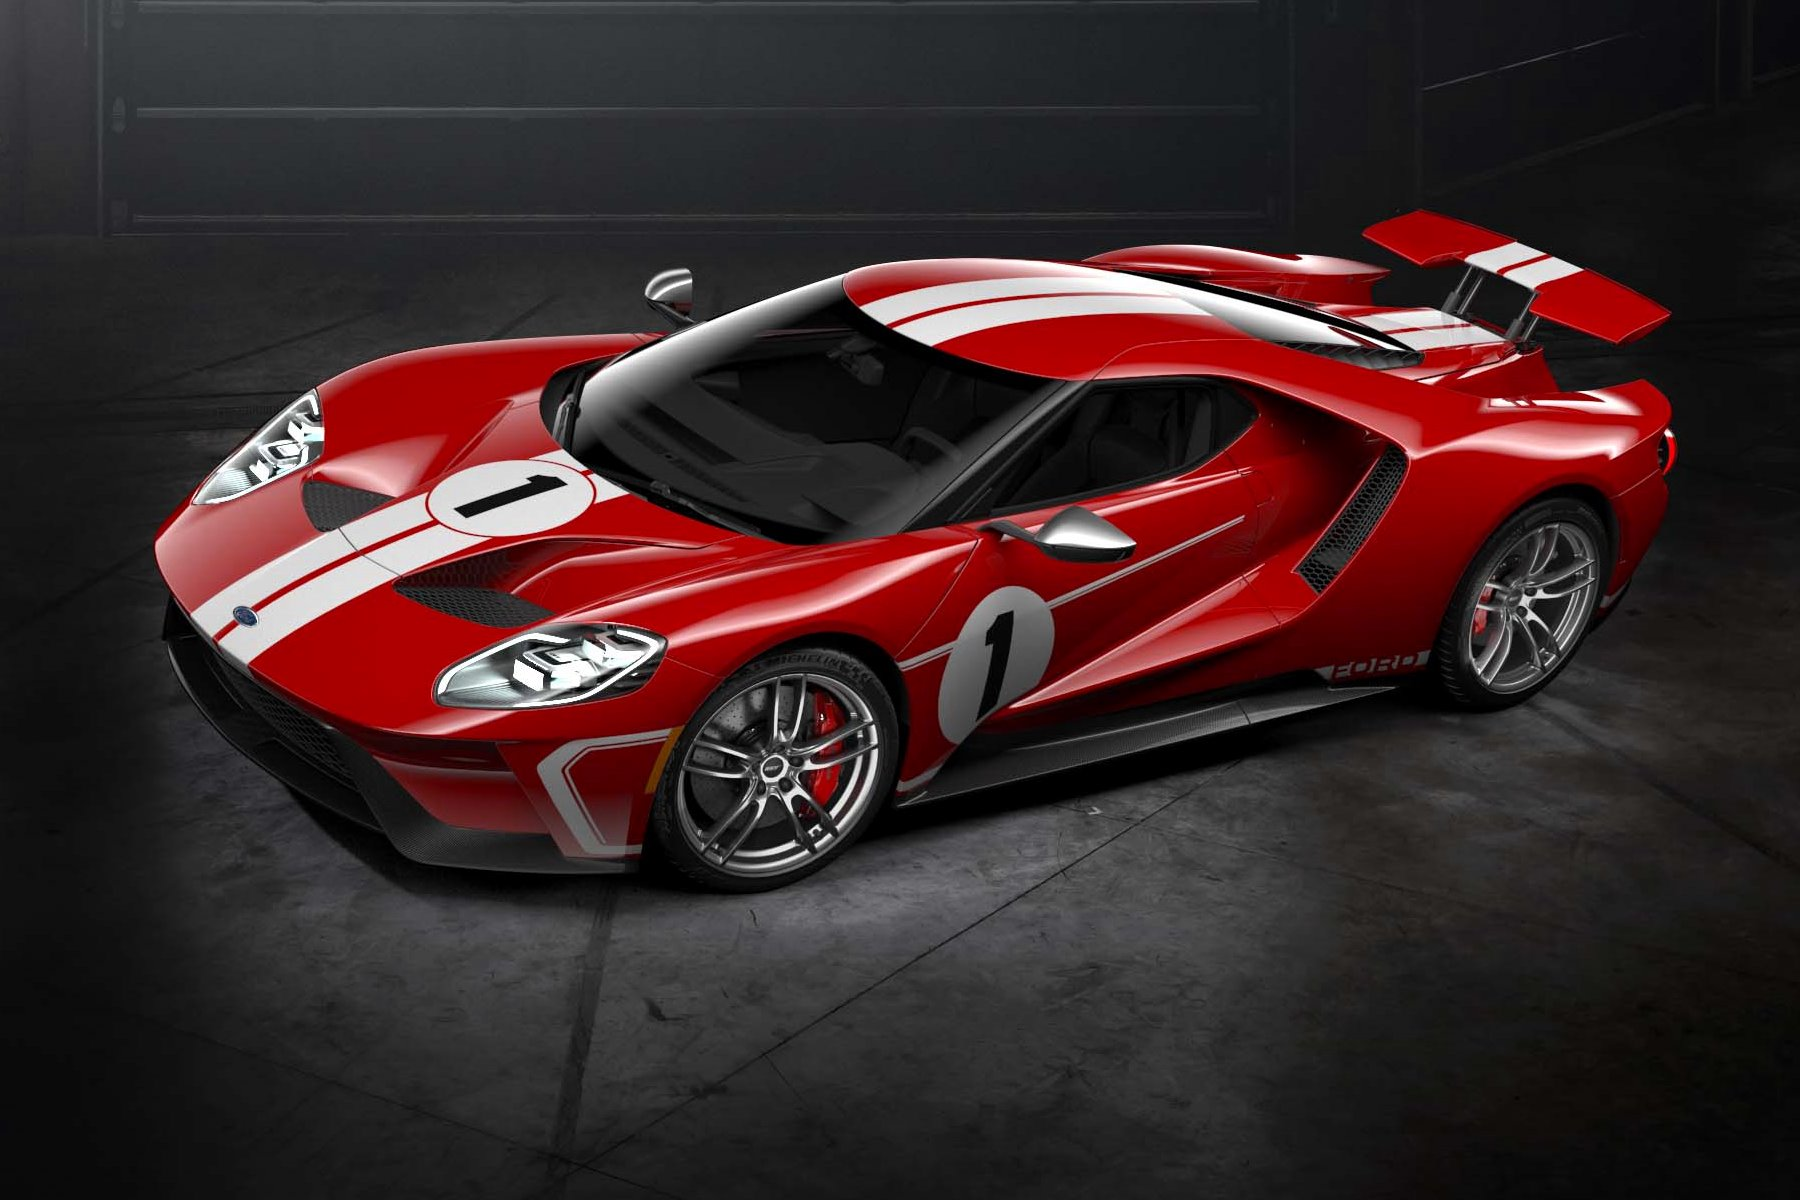 Ford Introduces 'Heritage' Themed 2018 Ford GT